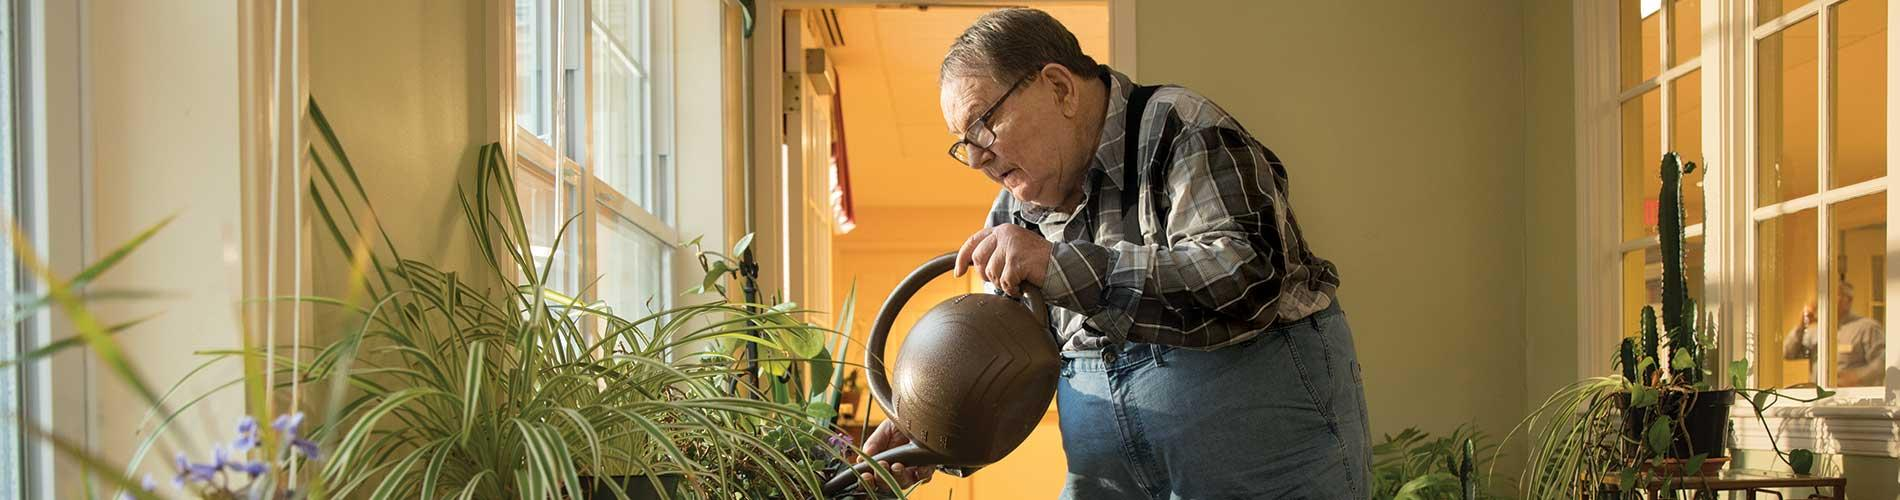 Old man waters plants with watering can